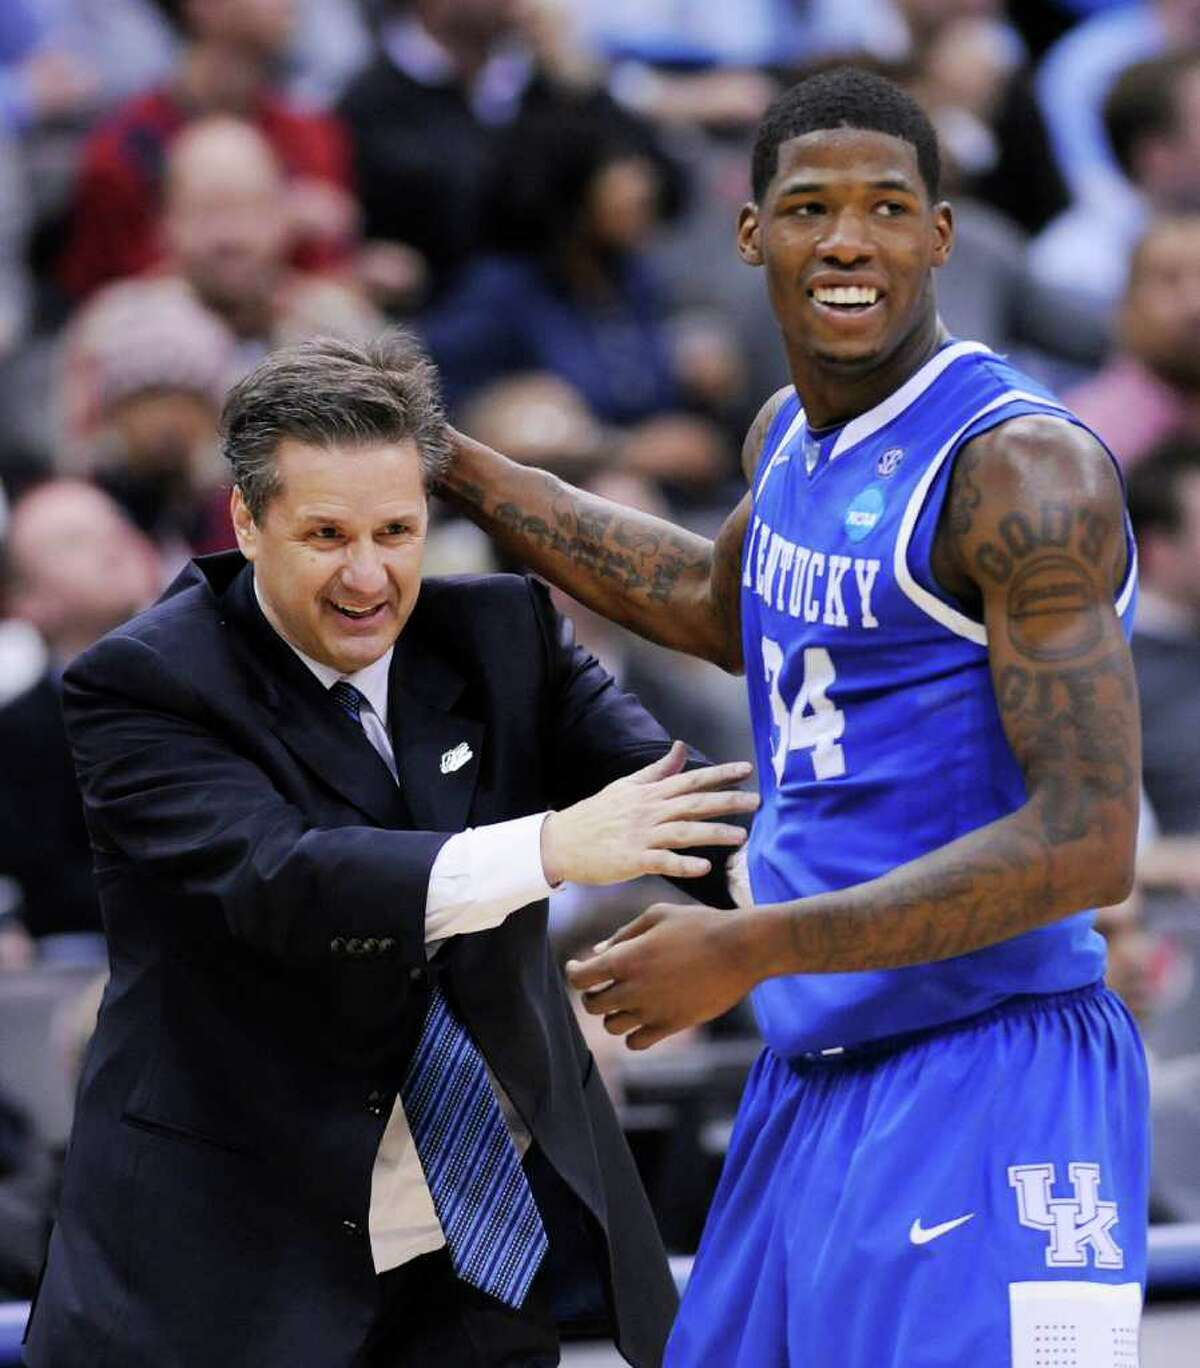 Kentucky coach John Calipari celebrates with DeAndre Liggins (34) during the second half of the final of the NCAA men's college basketball tournament East regional against North Carolina, Sunday, March 27, 2011, in Newark, N.J. Kentucky won 76-69. (AP Photo/Bill Kostroun)